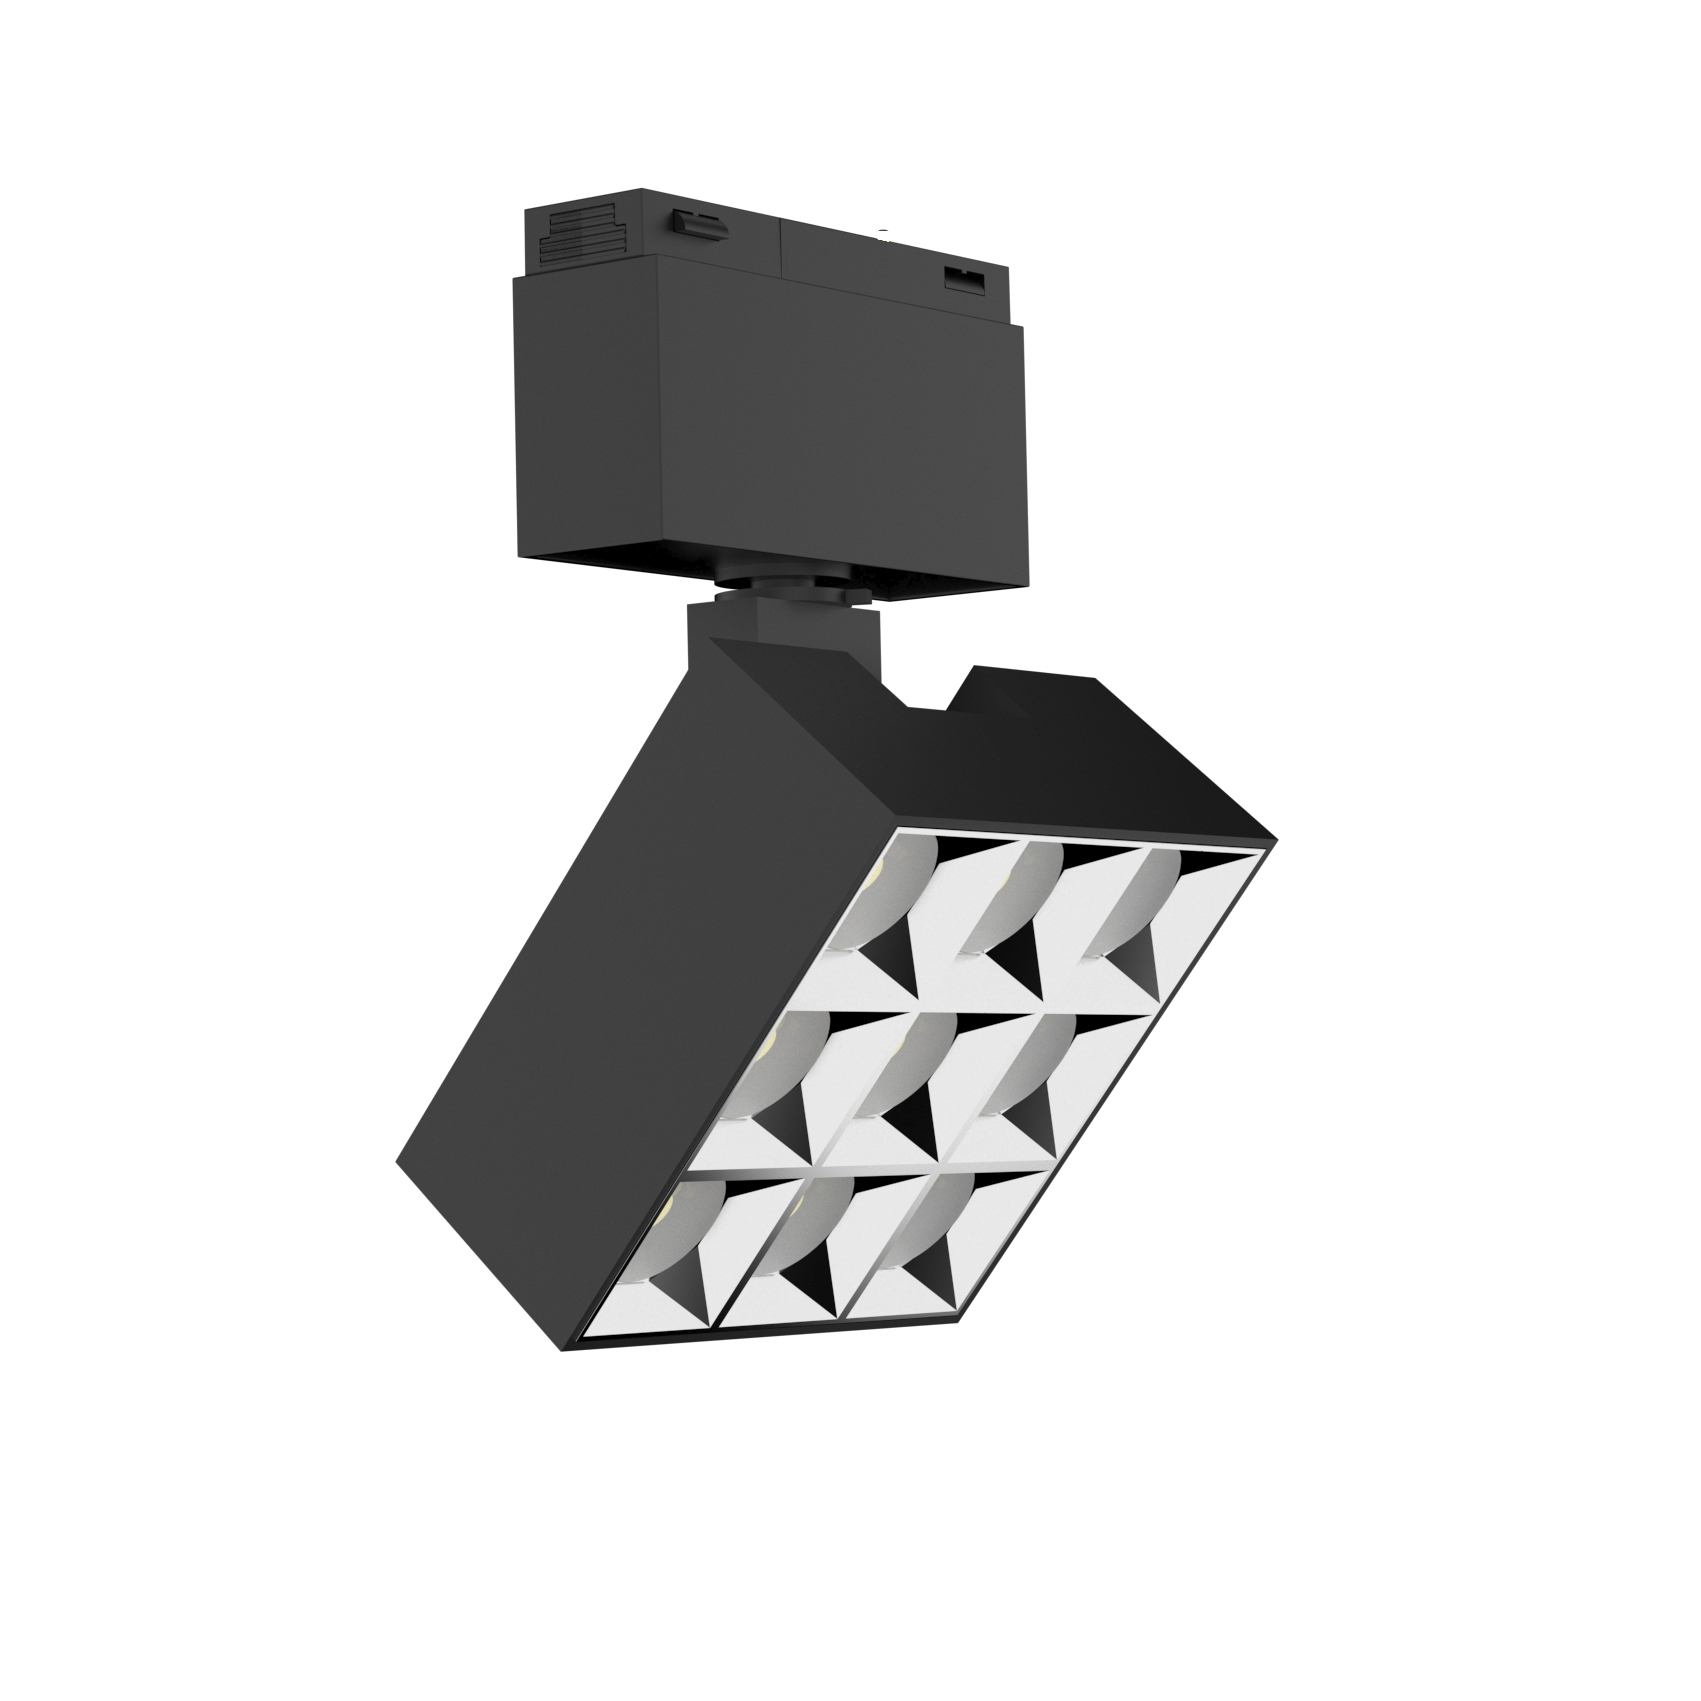 PNY-Oem Led Spot Light Price List | Pny Lighting Tech